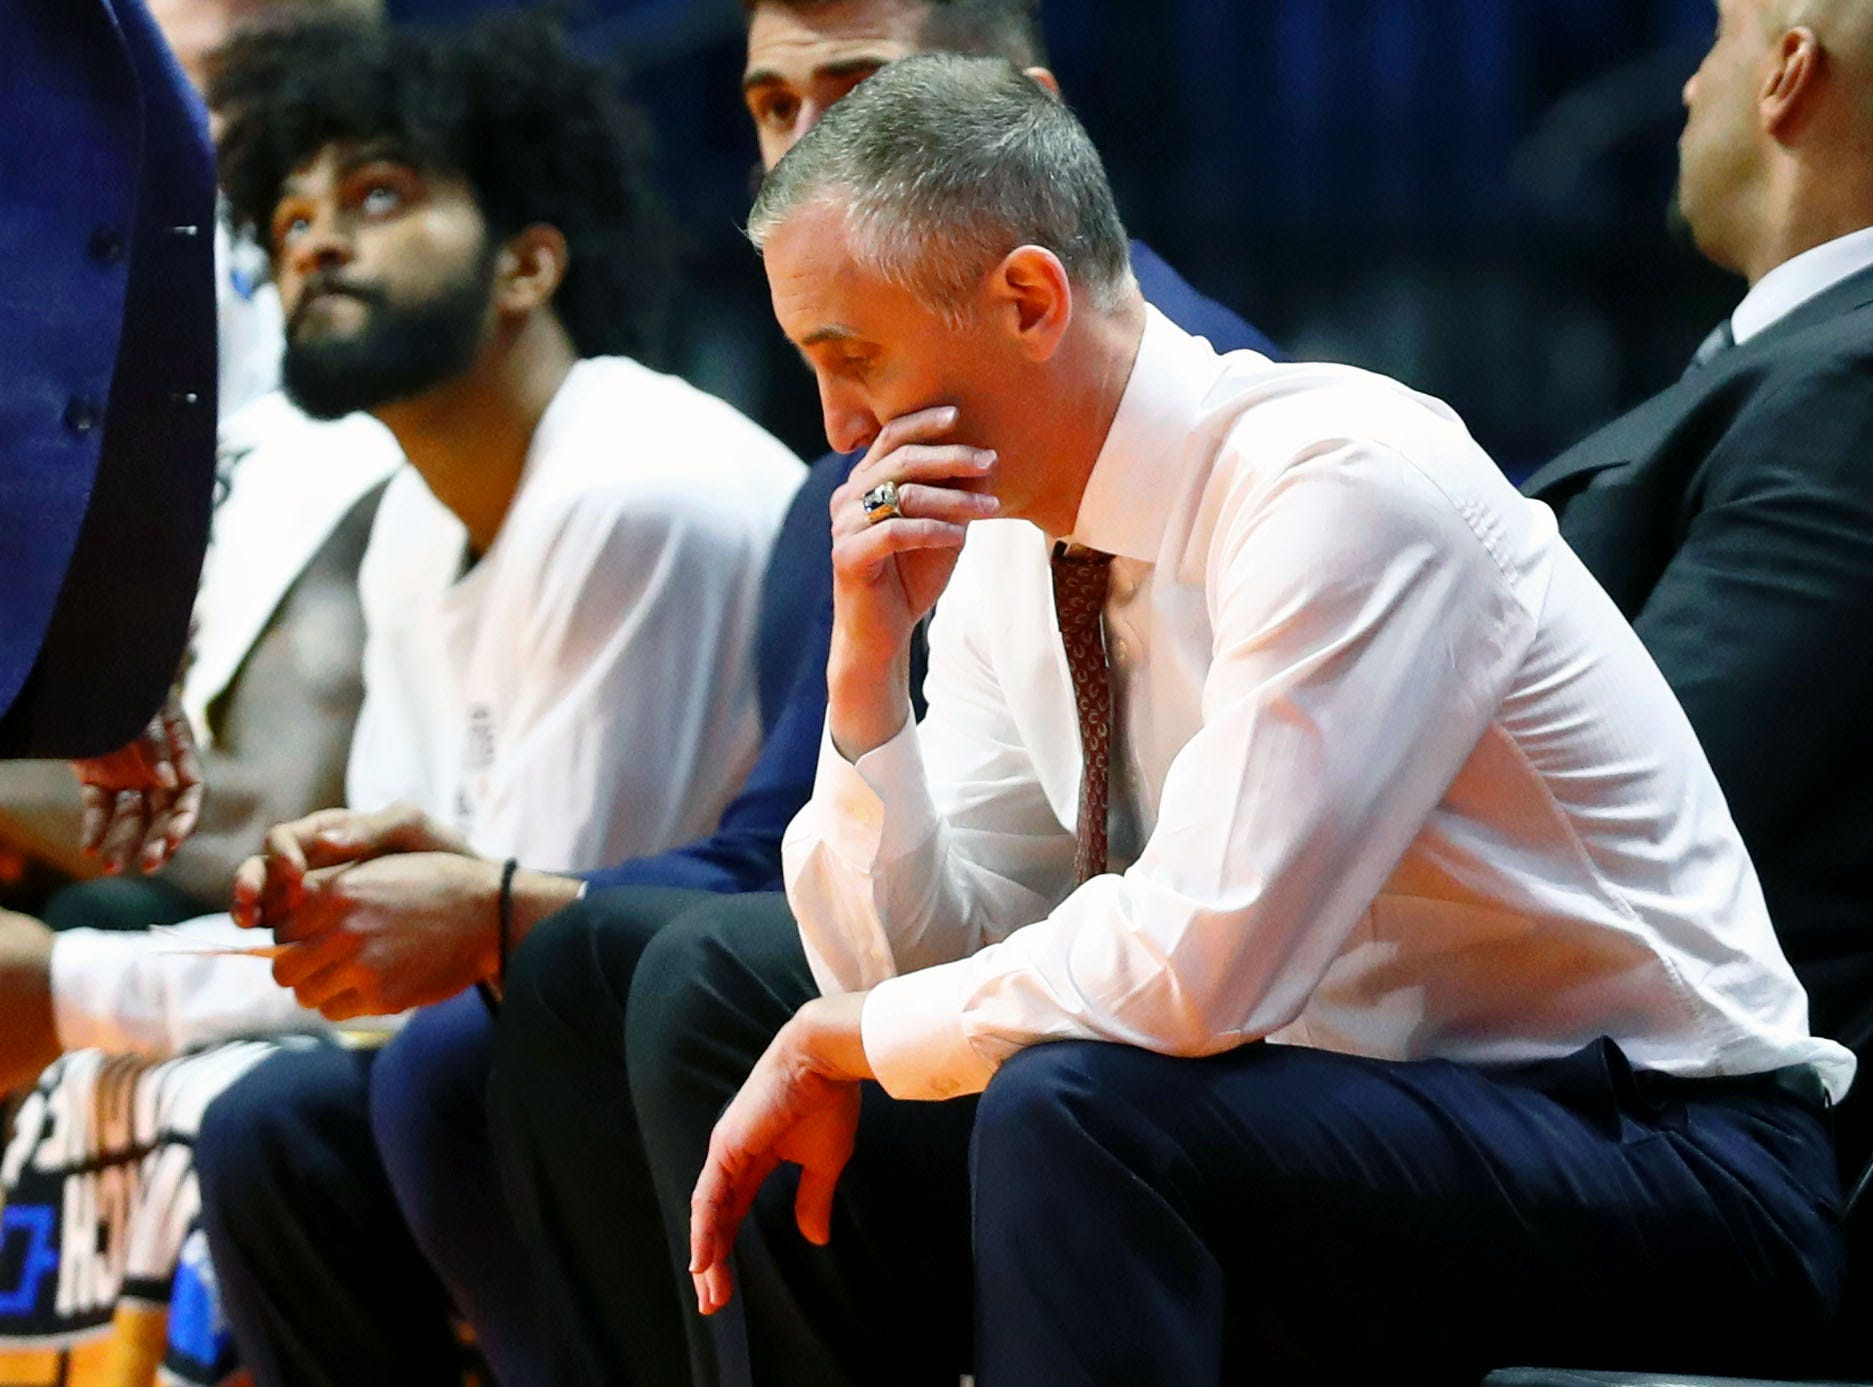 Mar 22, 2019; Tulsa, OK, USA; Arizona State Sun Devils head coach Bobby Hurley reacts on the bench in the final minutes of their loss to Buffalo Bulls in the first round of the 2019 NCAA Tournament at BOK Center. The Buffalo Bulls won 91-74. Mandatory Credit: Mark J. Rebilas-USA TODAY Sports